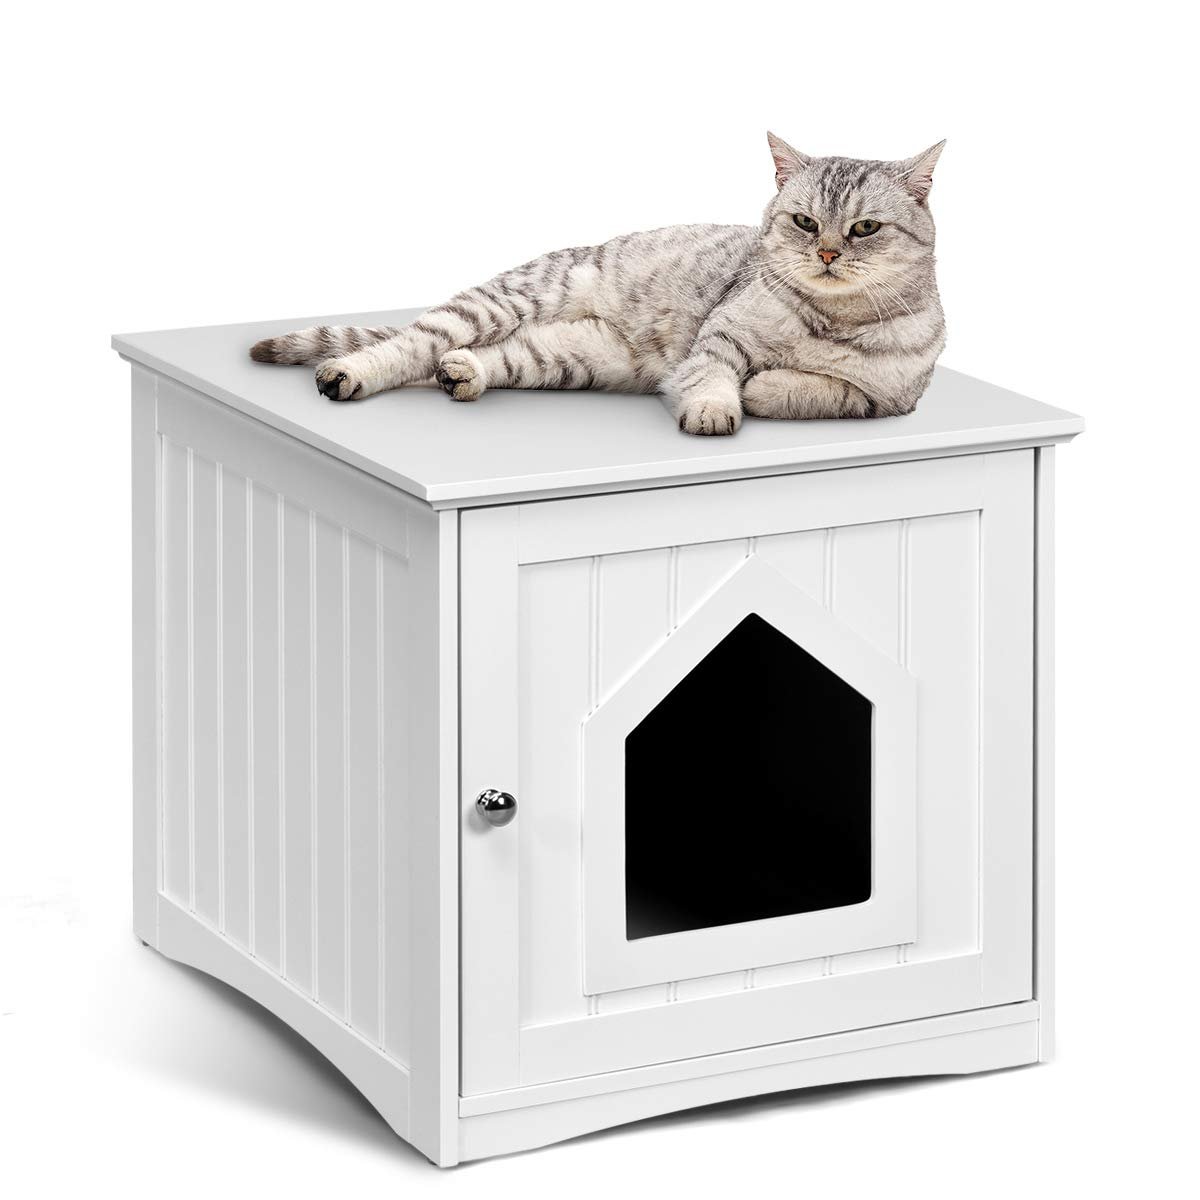 Tangkula Nightstand Pet House, Decorative Cat House, Cat Home Nightstand, Litter Box Furniture, Indoor Pet Crate, Cat Washroom, Litter Box Enclosure (White) by Tangkula